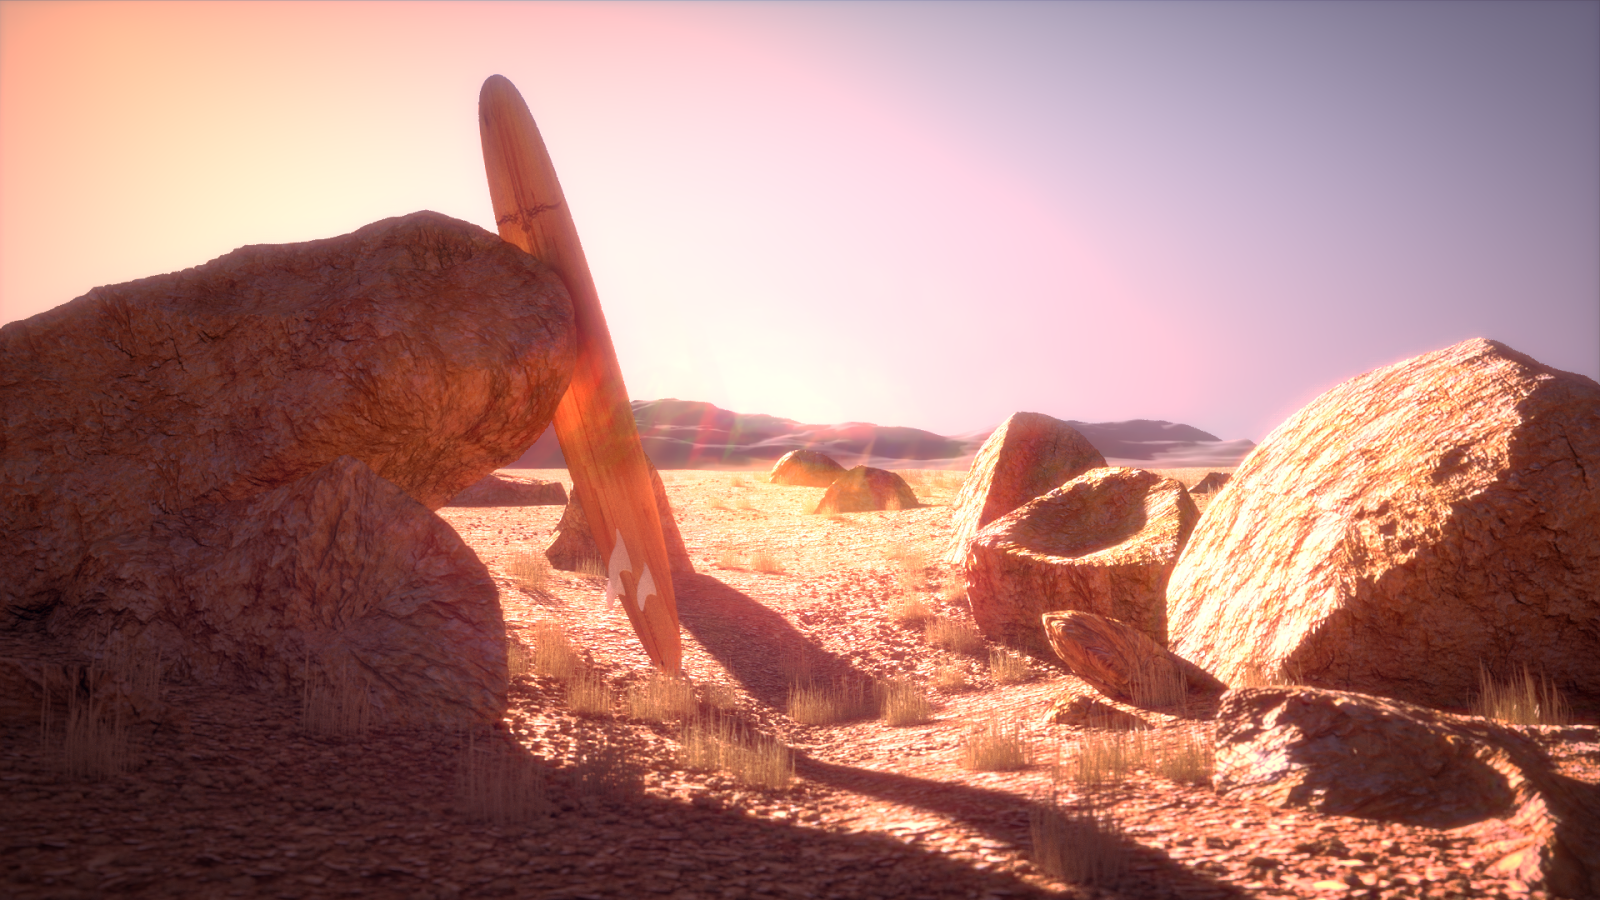 blender 3d cycles render surfboard desert rocks